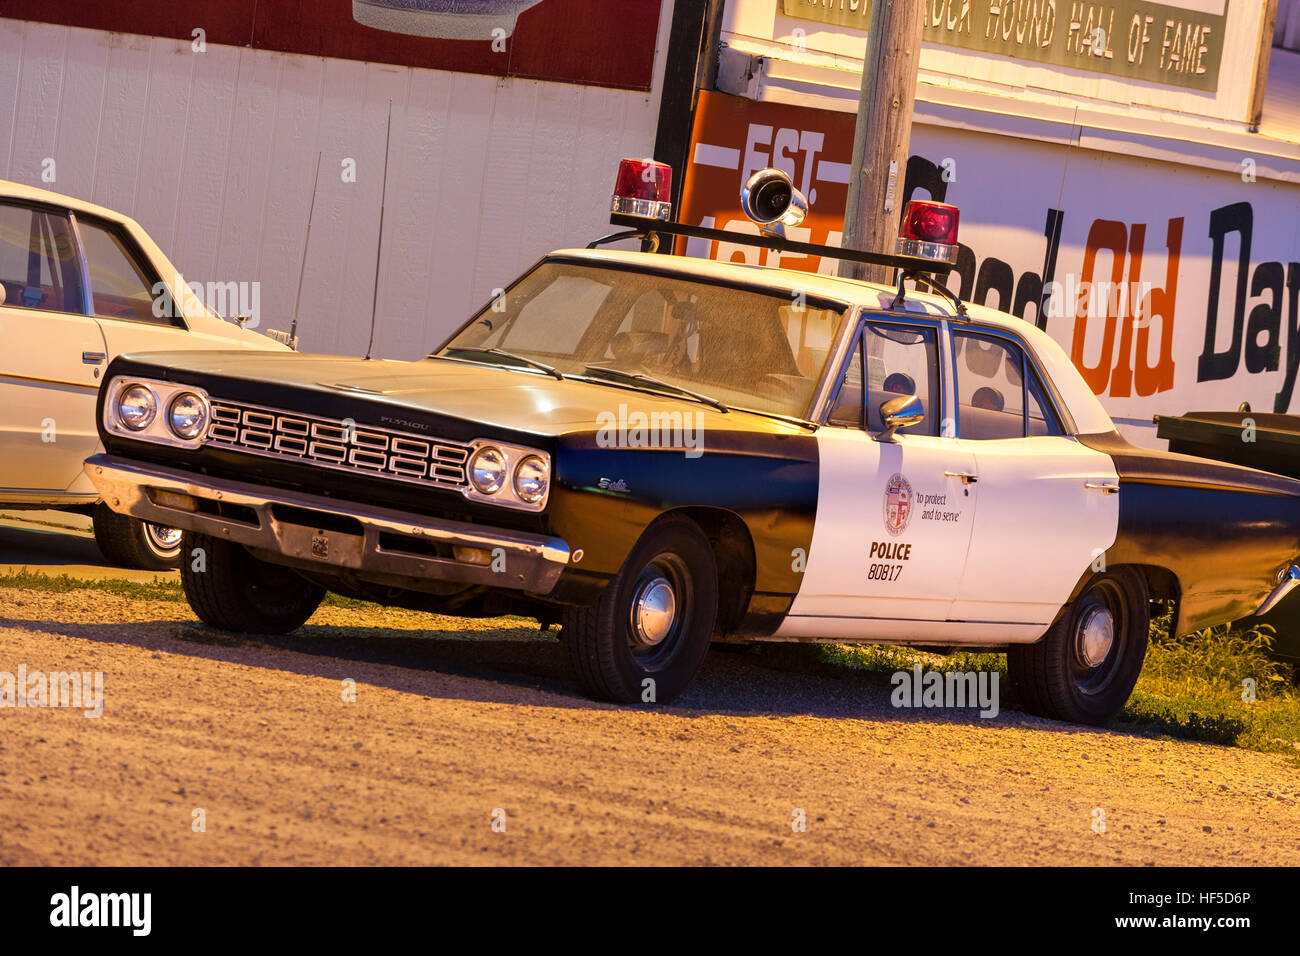 American police car, patrol car, squad car, police cruiser.  Vintage 1968 Plymouth Satellite police package car. Stock Photo